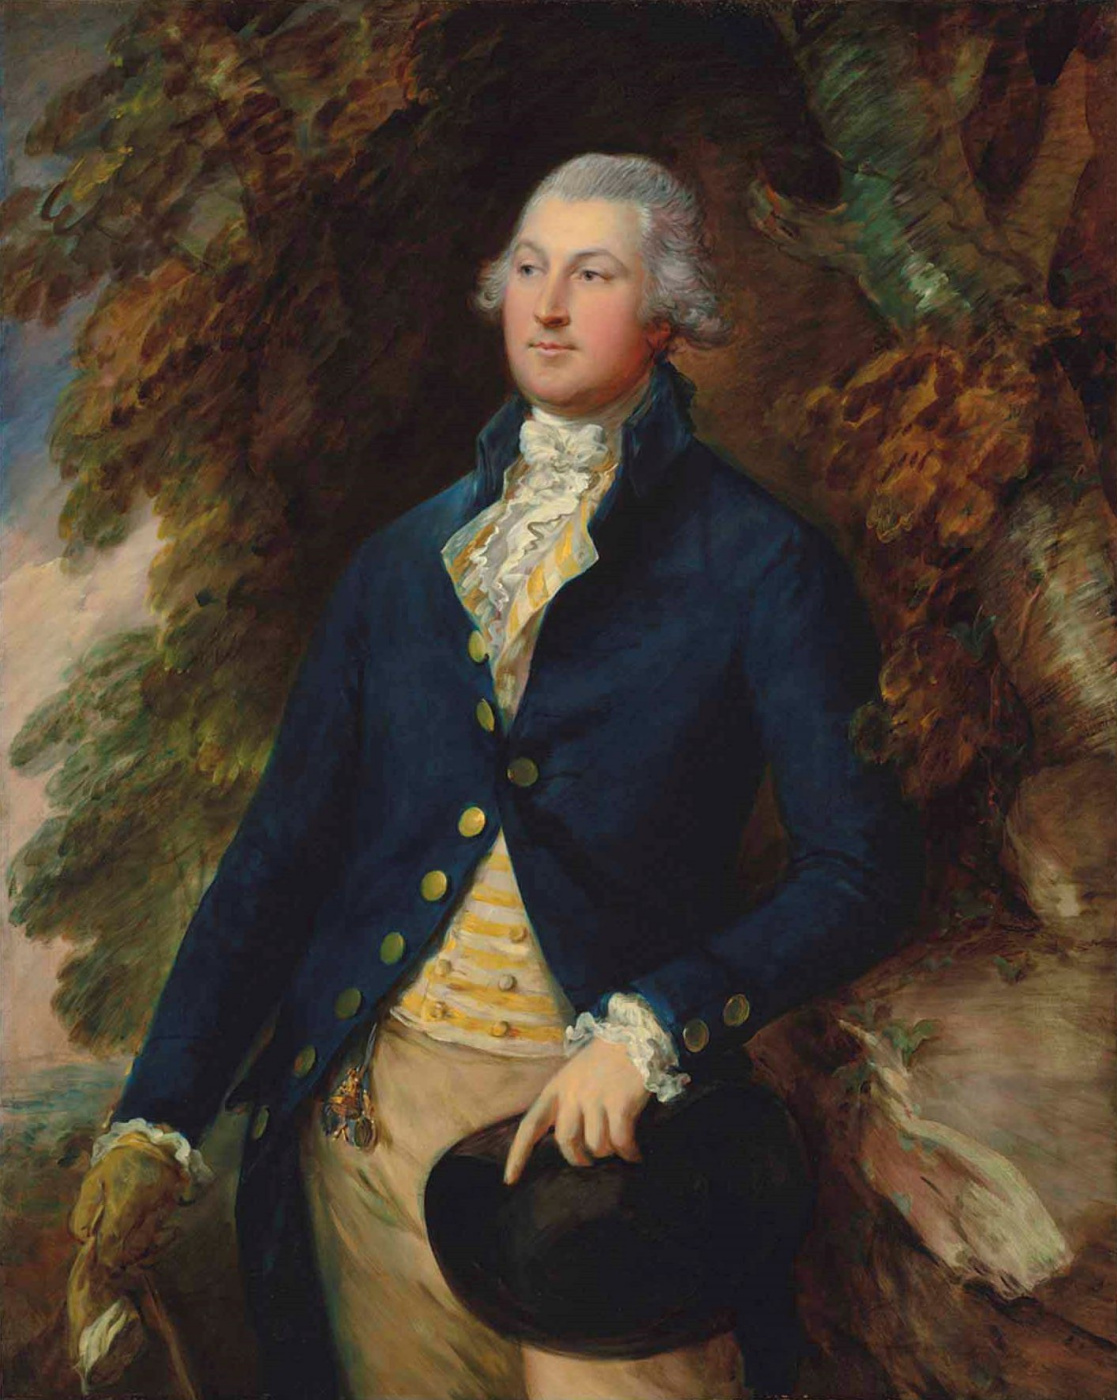 Thomas Gainsborough. Portrait of sir Richard Brooke